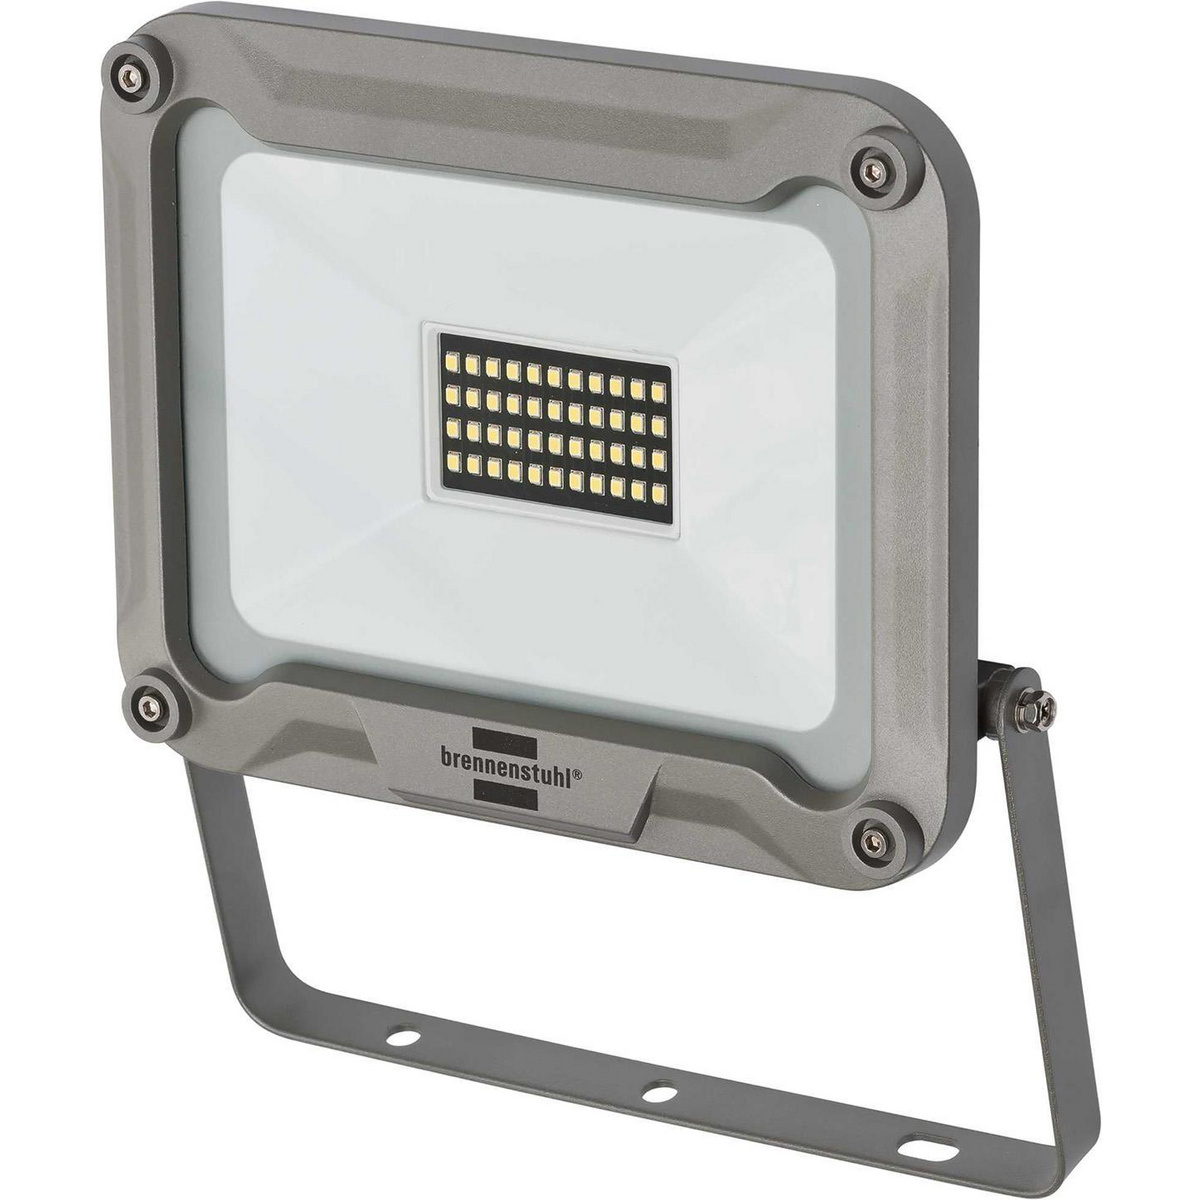 Suitable for indoor and outdoor installation, IP 65. Powerful 30 WLED lamp with chip for wall mounting, with extra wide light distribution for illuminating a large surface. Ideal for hobbyists, workshops and building sites. Illuminated entrances to homes,